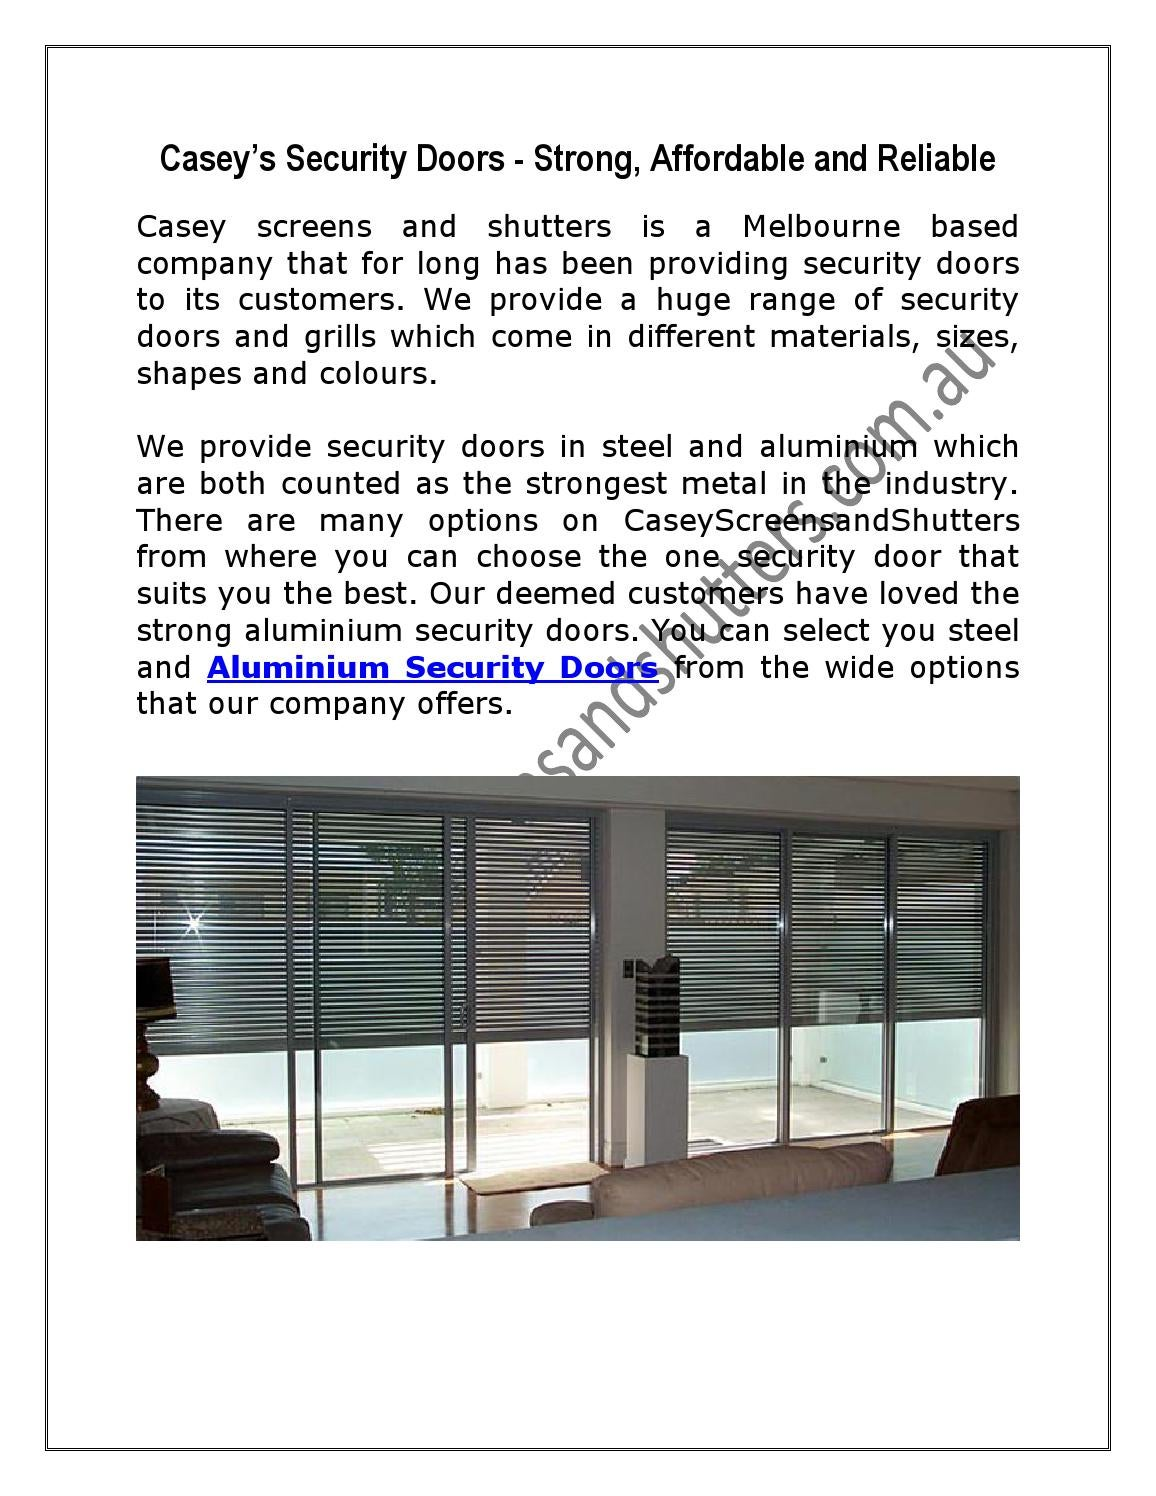 Casey's Security Doors - Strong, Affordable and Reliable by ...